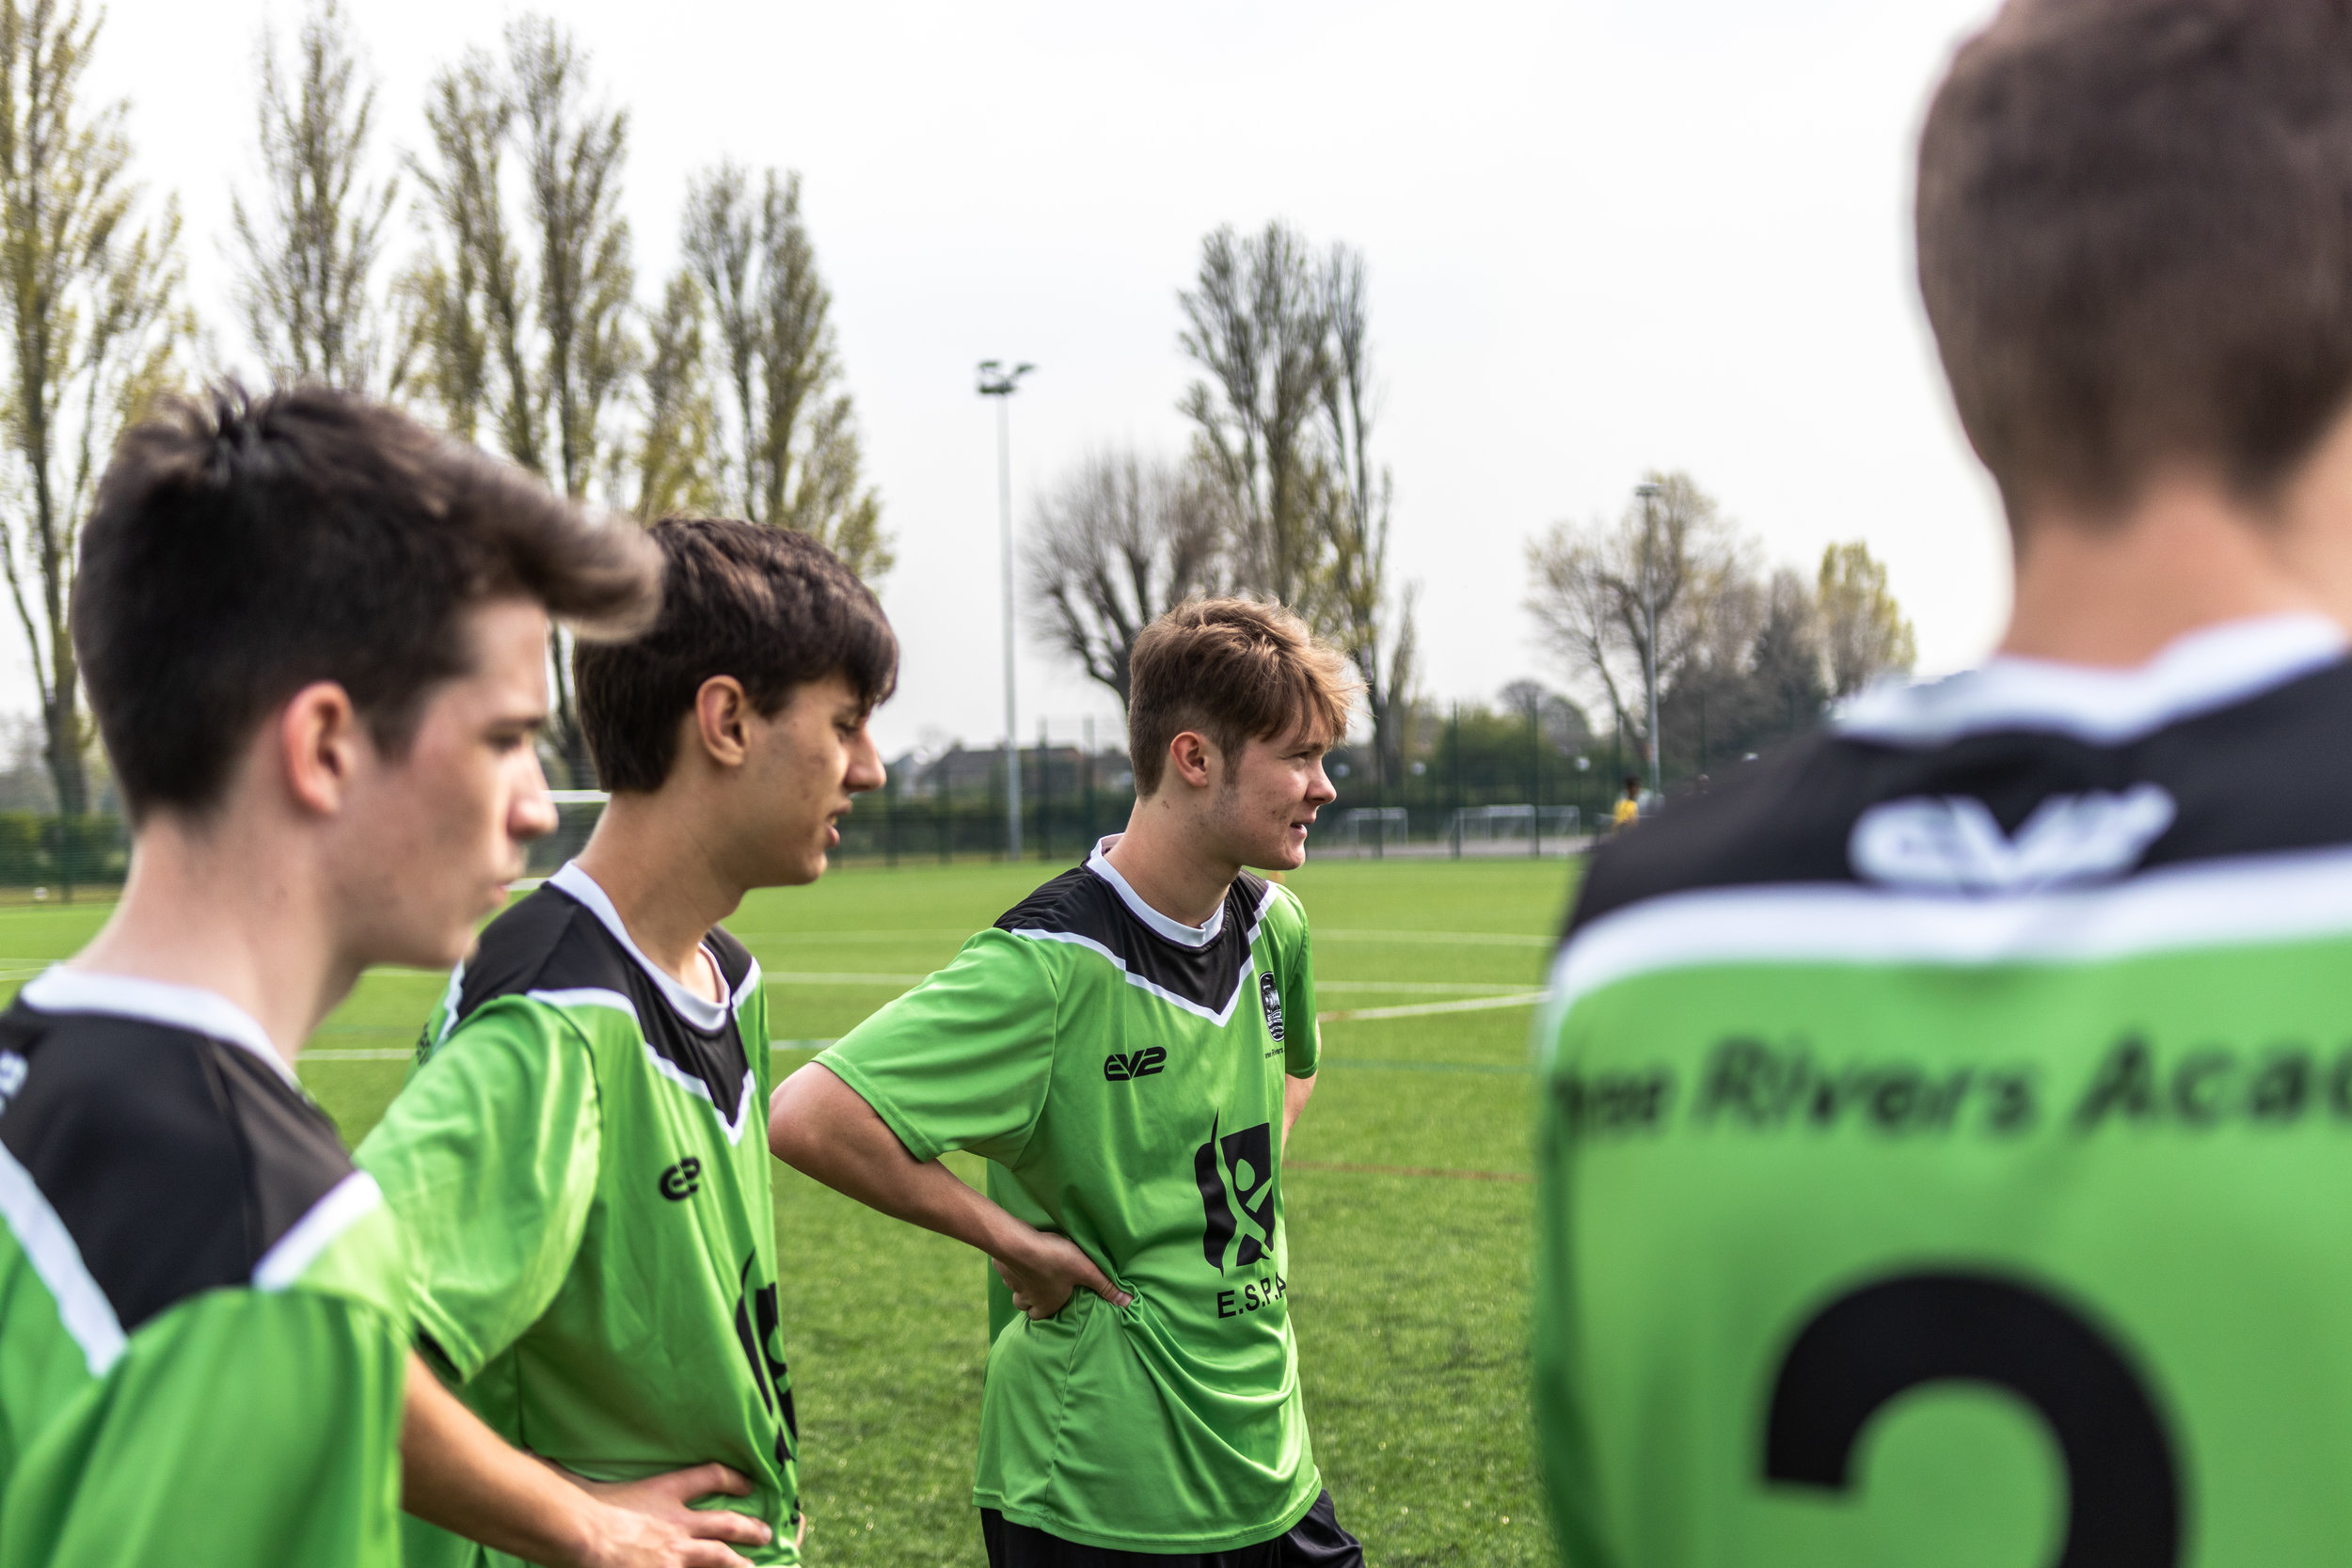 E.S.P.A.AT THREE RIVERS - E.S.P.A. at Three Rivers Academy has been set up with the aim of offering an Elite Level College Football Programme similar to that of professional clubs in the UK